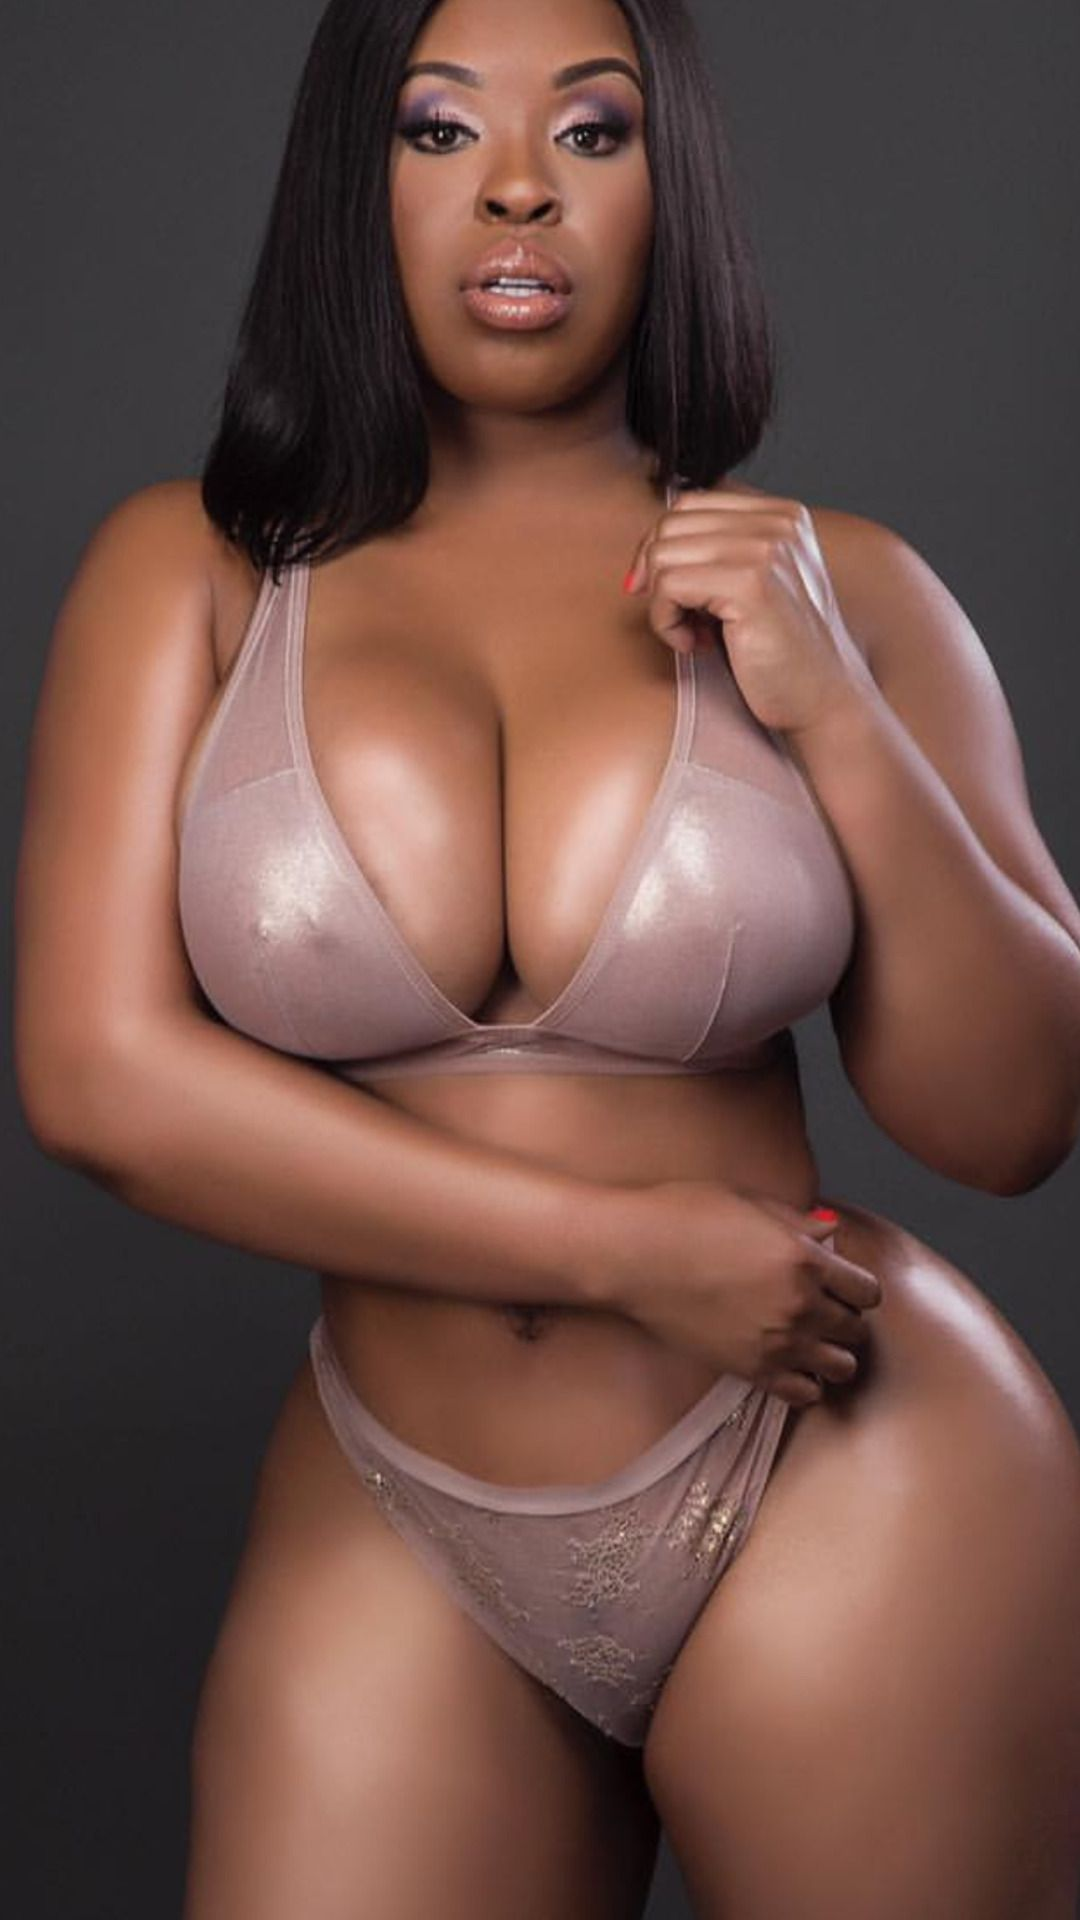 Sexy nude black women with big boobs gif